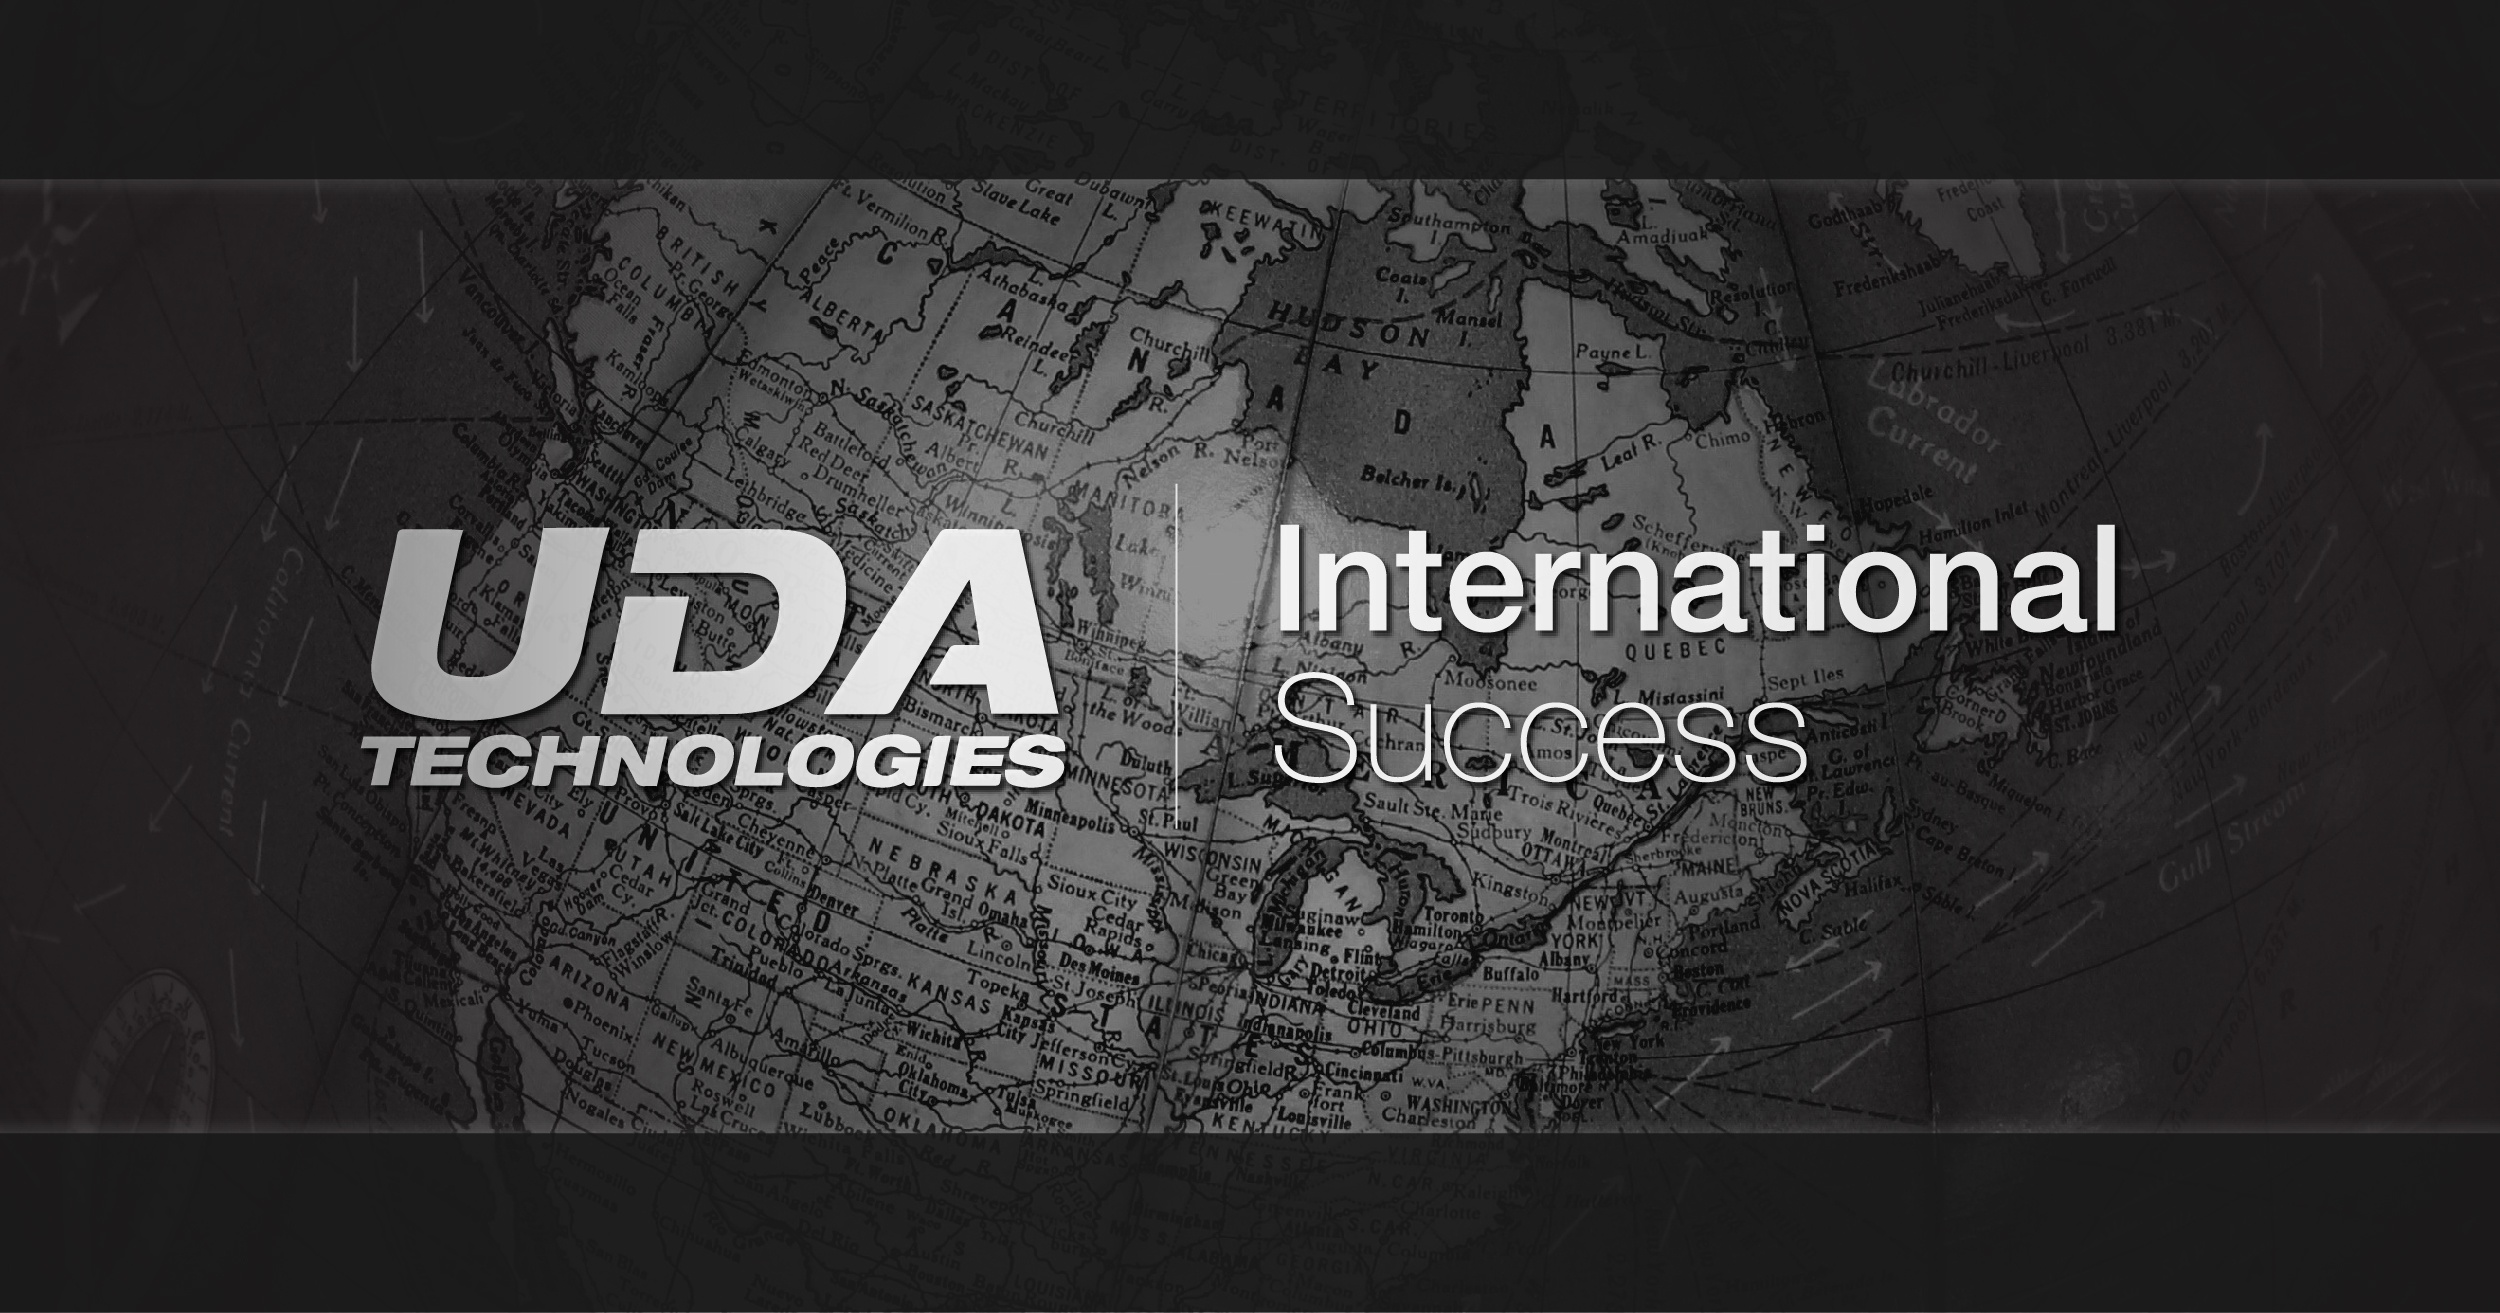 UDA Technologies Experiences Impressive International Success